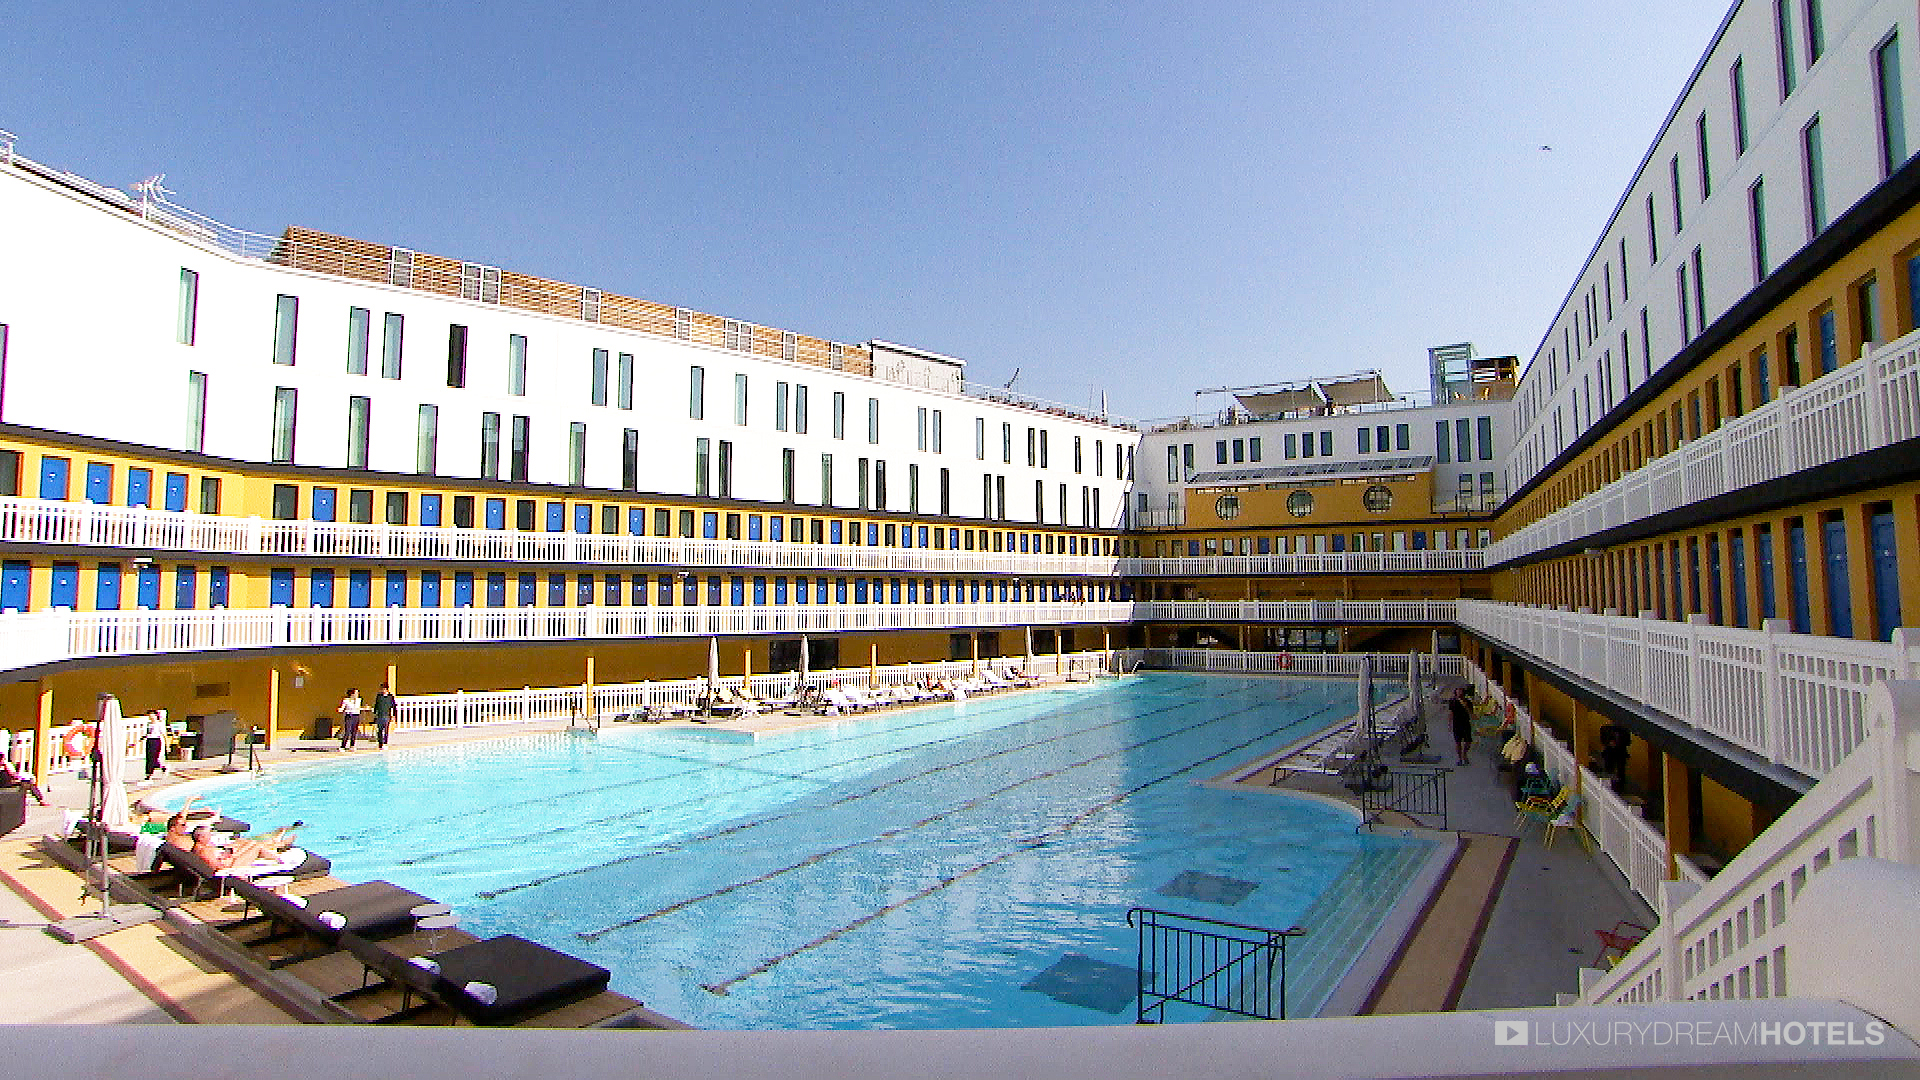 Hotel Molitor Piscine Hôtel De Luxe Hotel Molitor Paris Mgallery Collection Paris